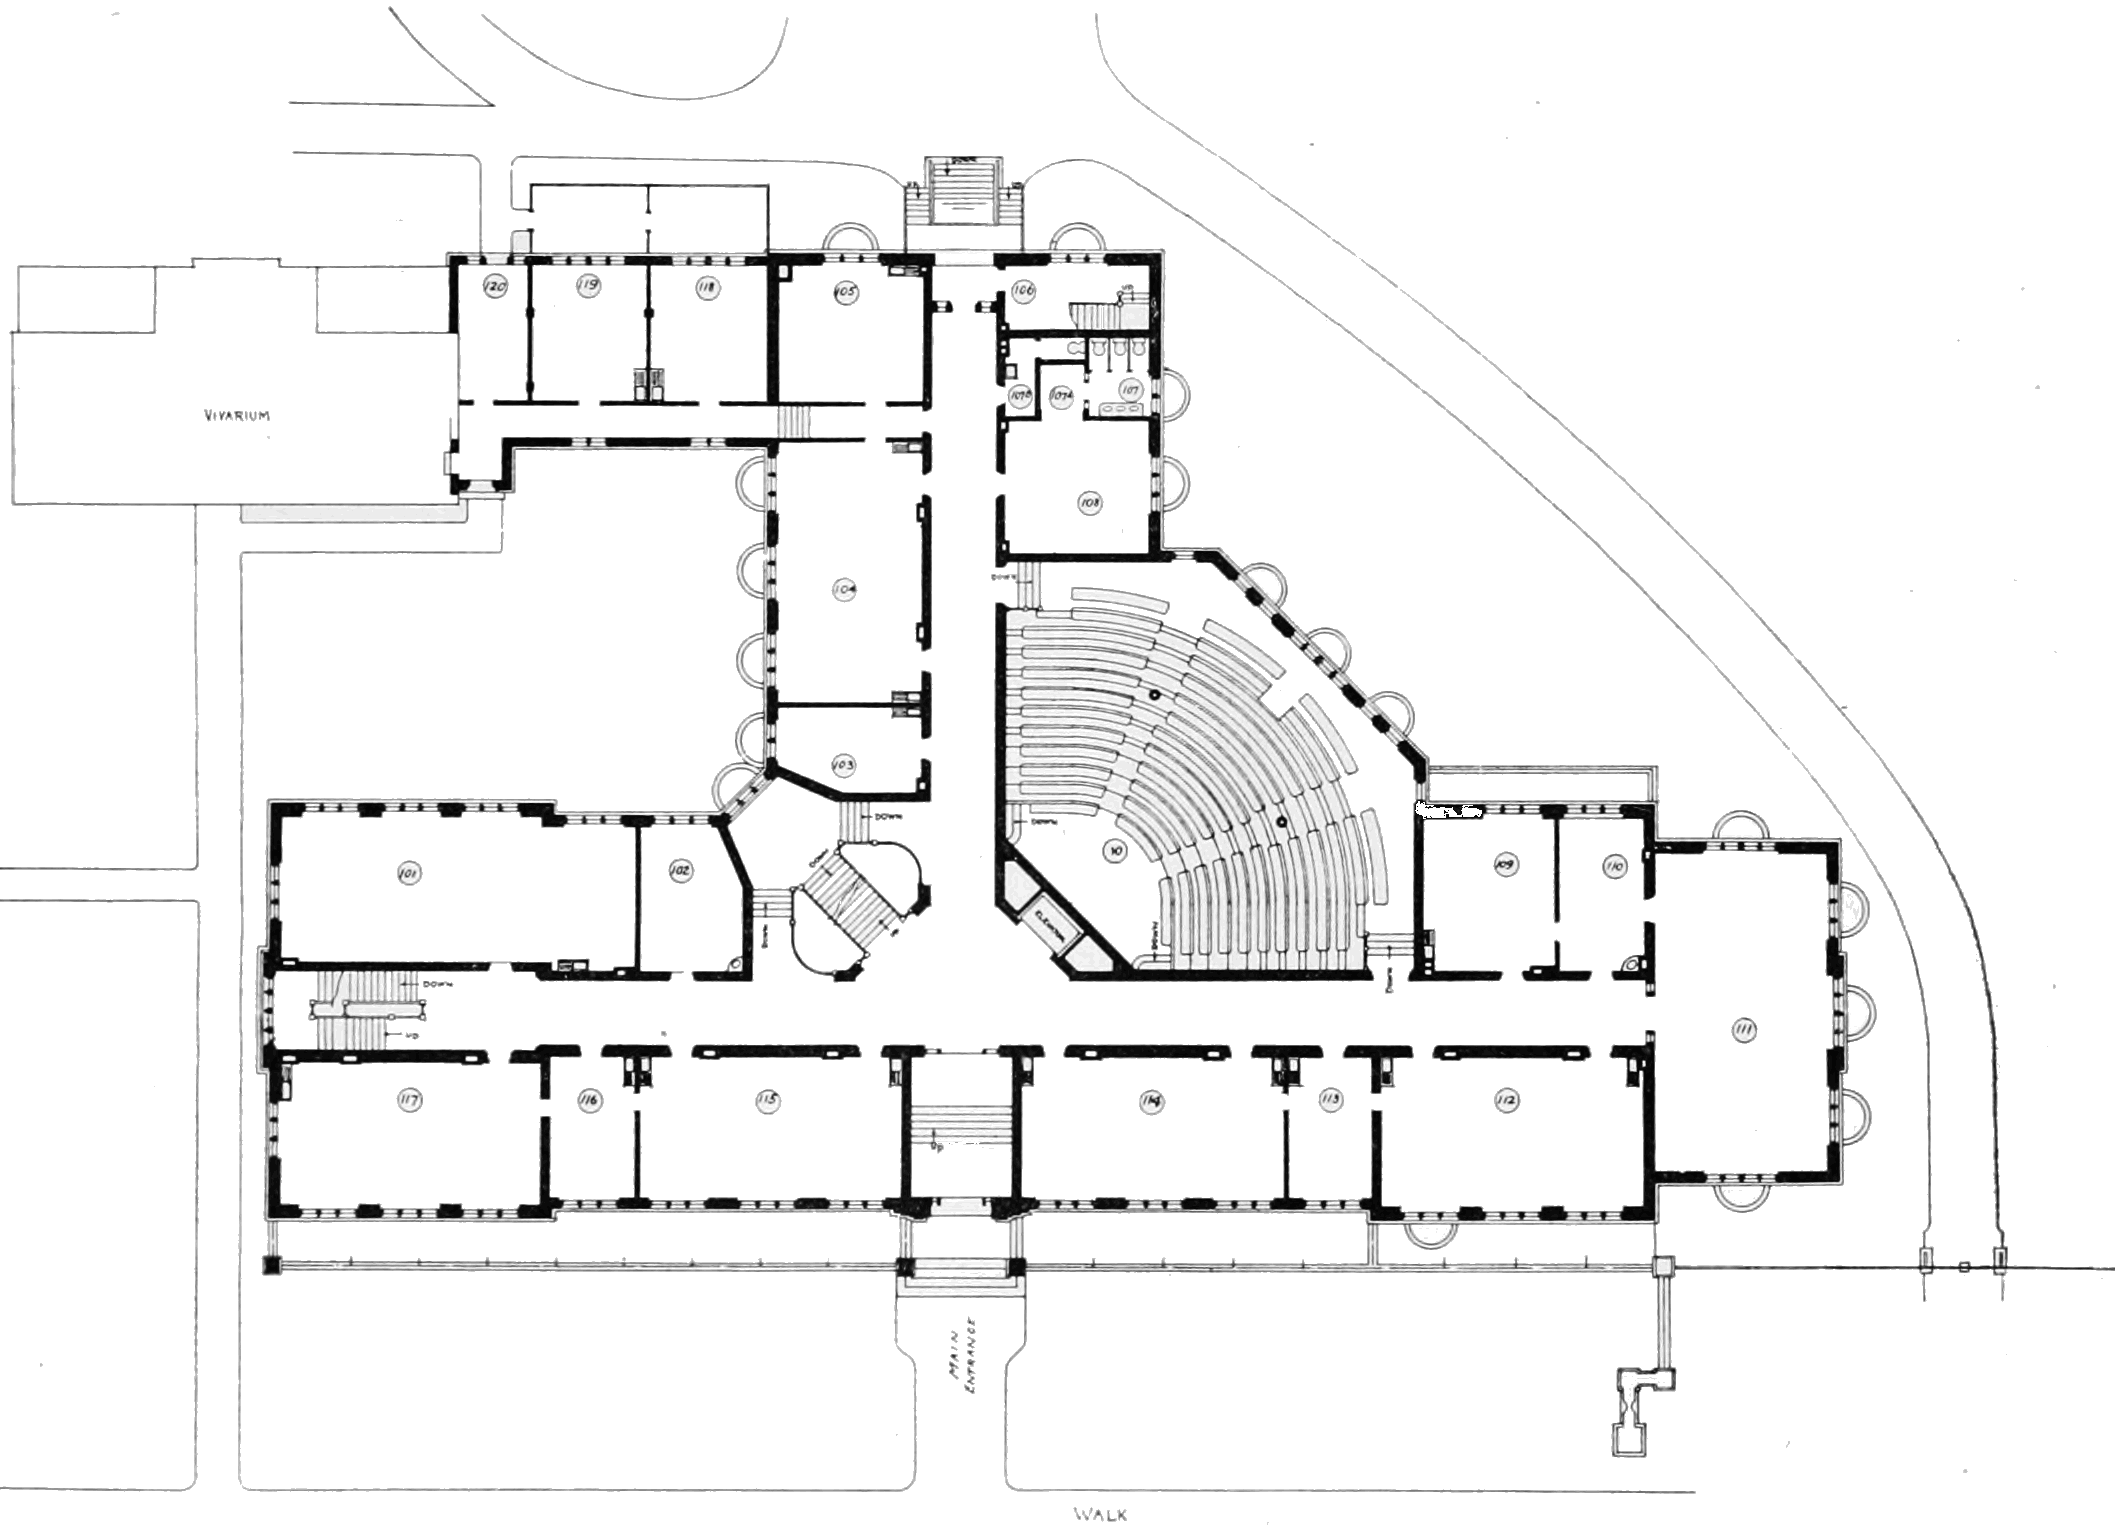 file psm v79 d623 first floor plan of the zoological lab at the u